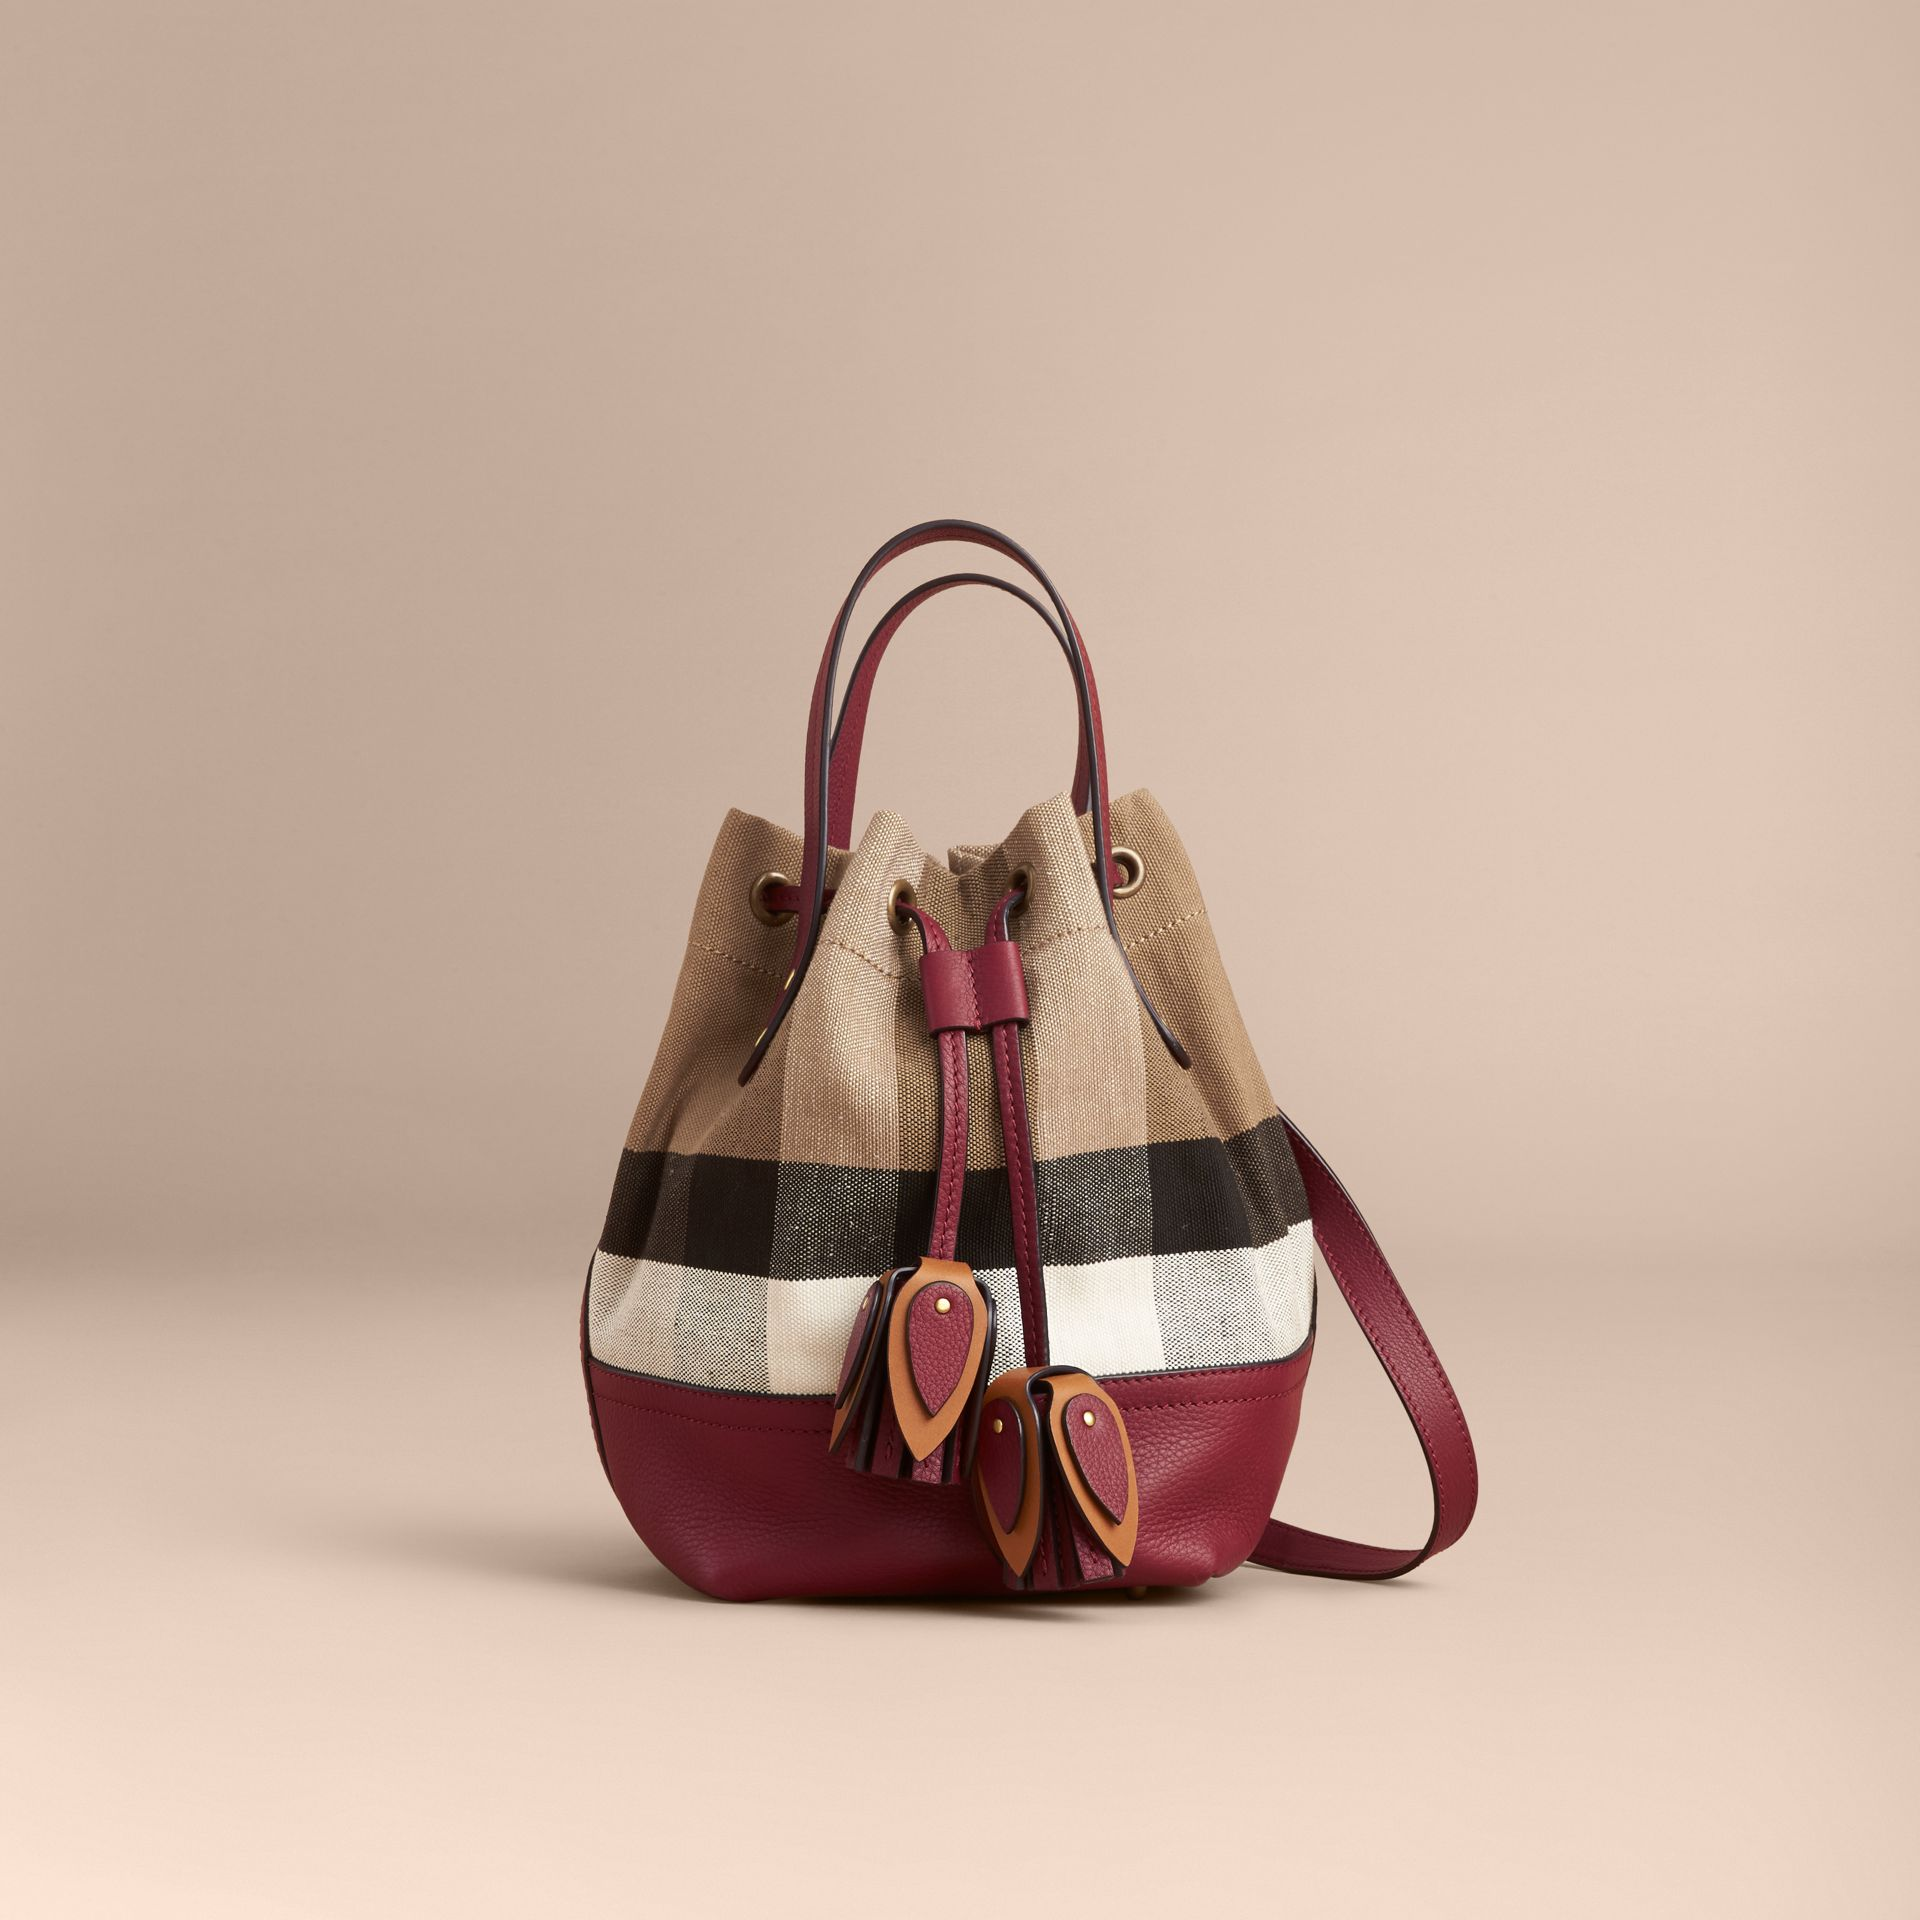 Small Canvas Check and Leather Bucket Bag in Burgundy Red - Women | Burberry - gallery image 7